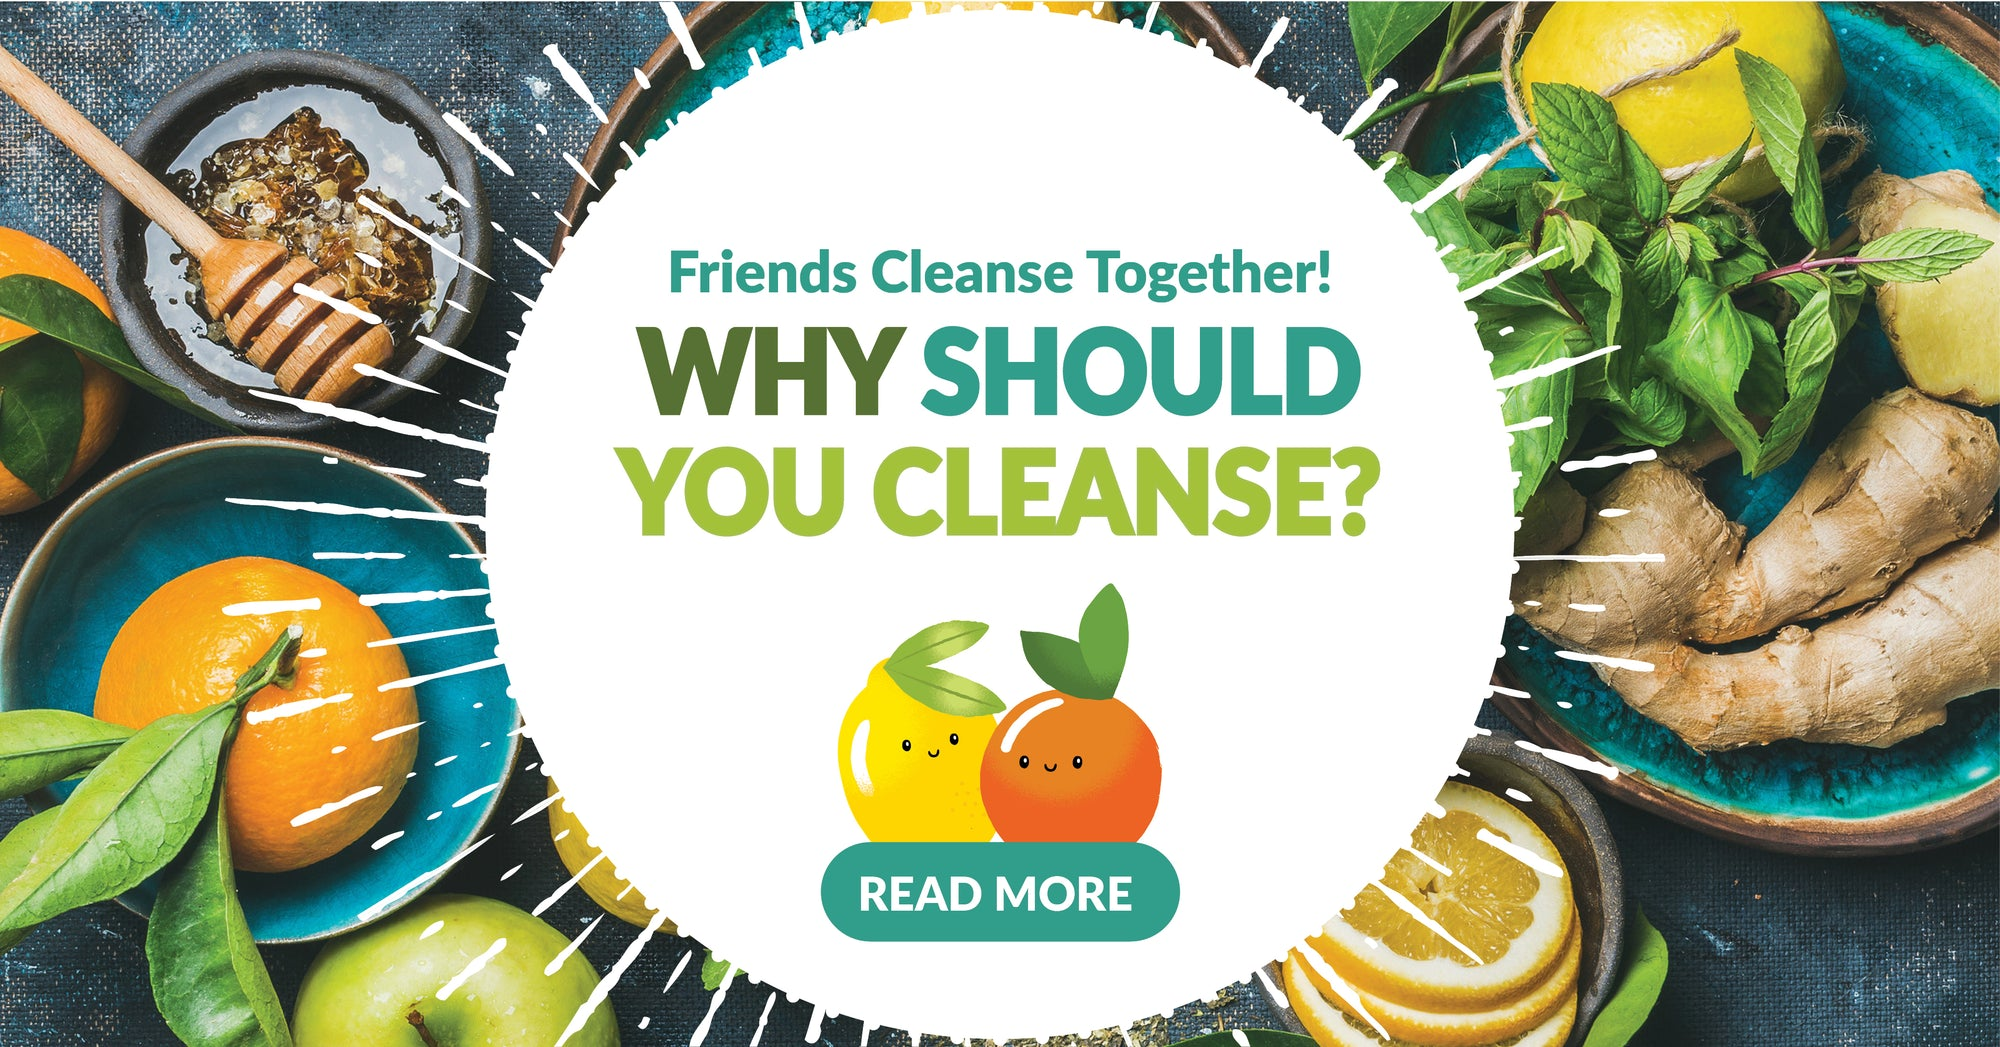 Friends cleanse together: Why cleanse?